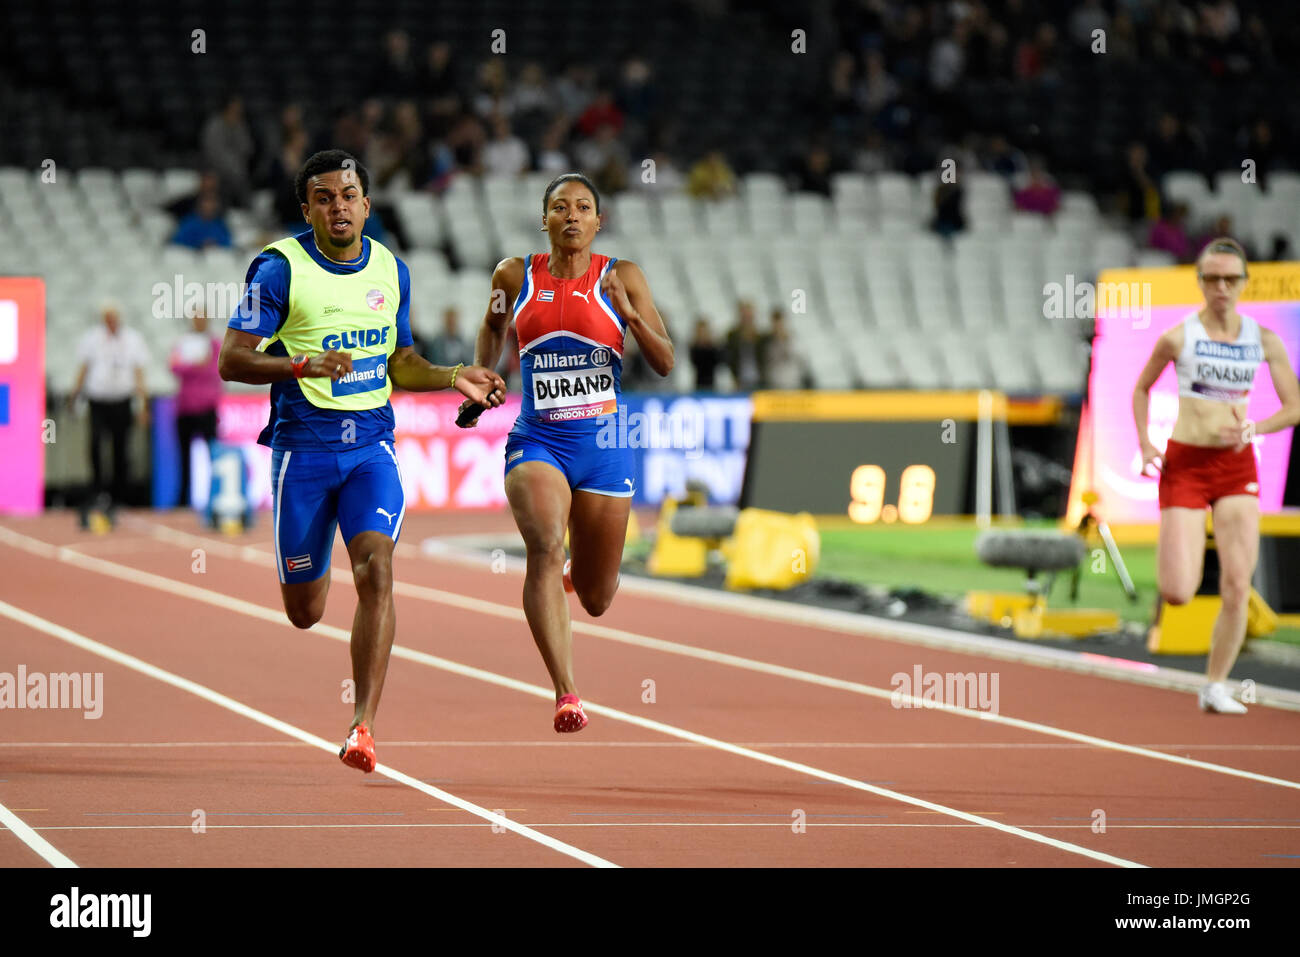 Omara Durand winning gold in the 100m T12 at the World Para Athletics Championships in the London Stadium. Guide Yuniol KINDELAN. Space for copy - Stock Image